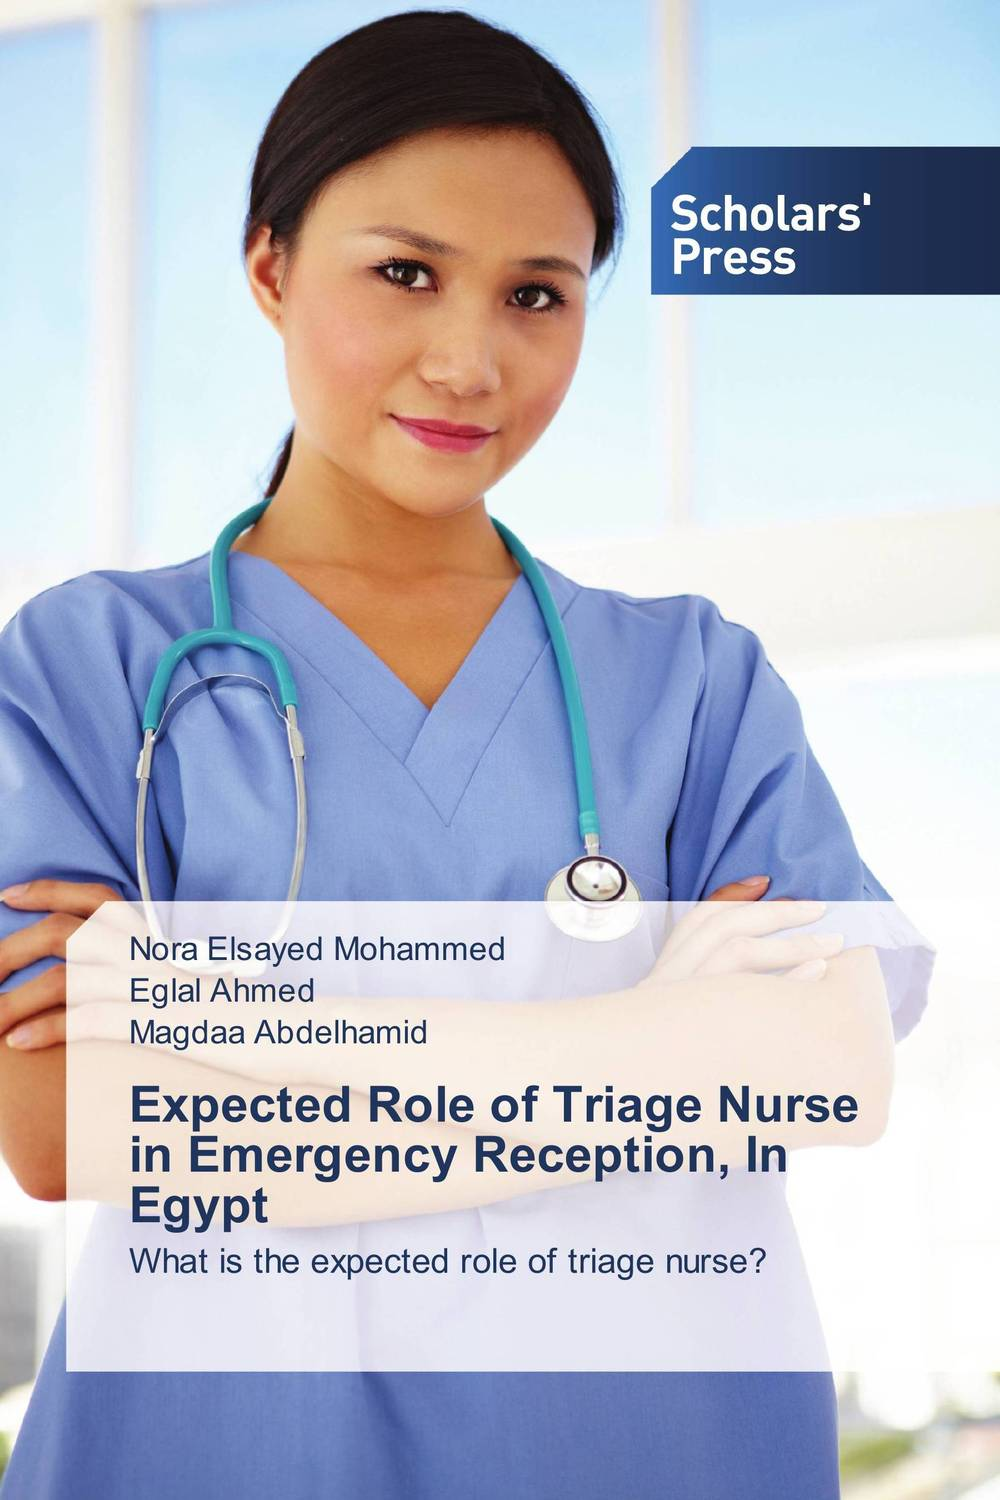 Expected Role of Triage Nurse in Emergency Reception, In Egypt the role of writing in undergraduate design education in the uk